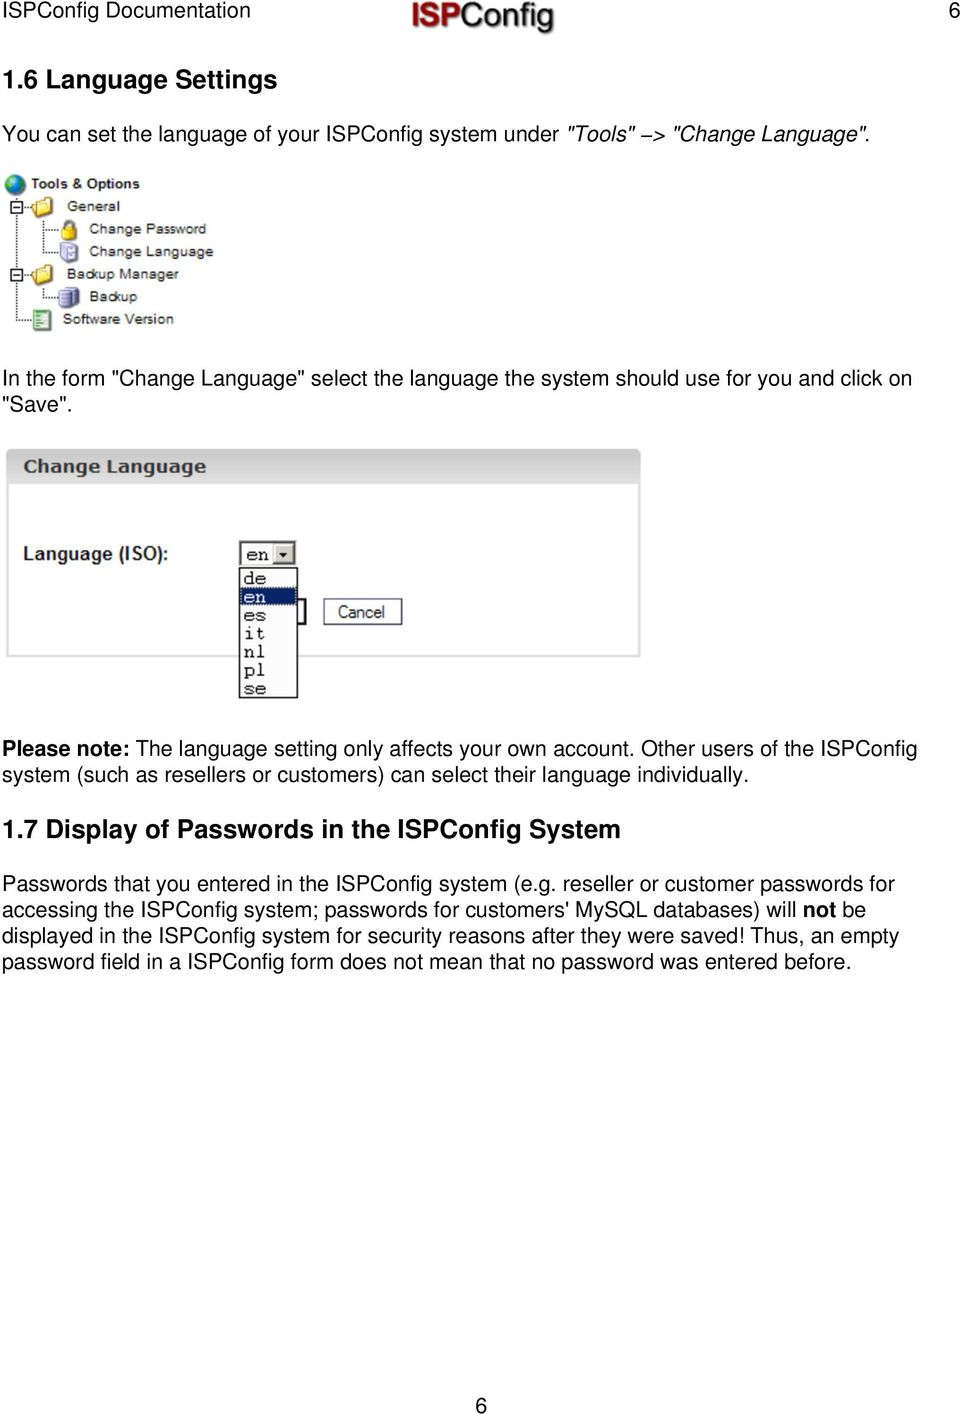 Other users of the ISPConfig system (such as resellers or customers) can select their language individually. 1.